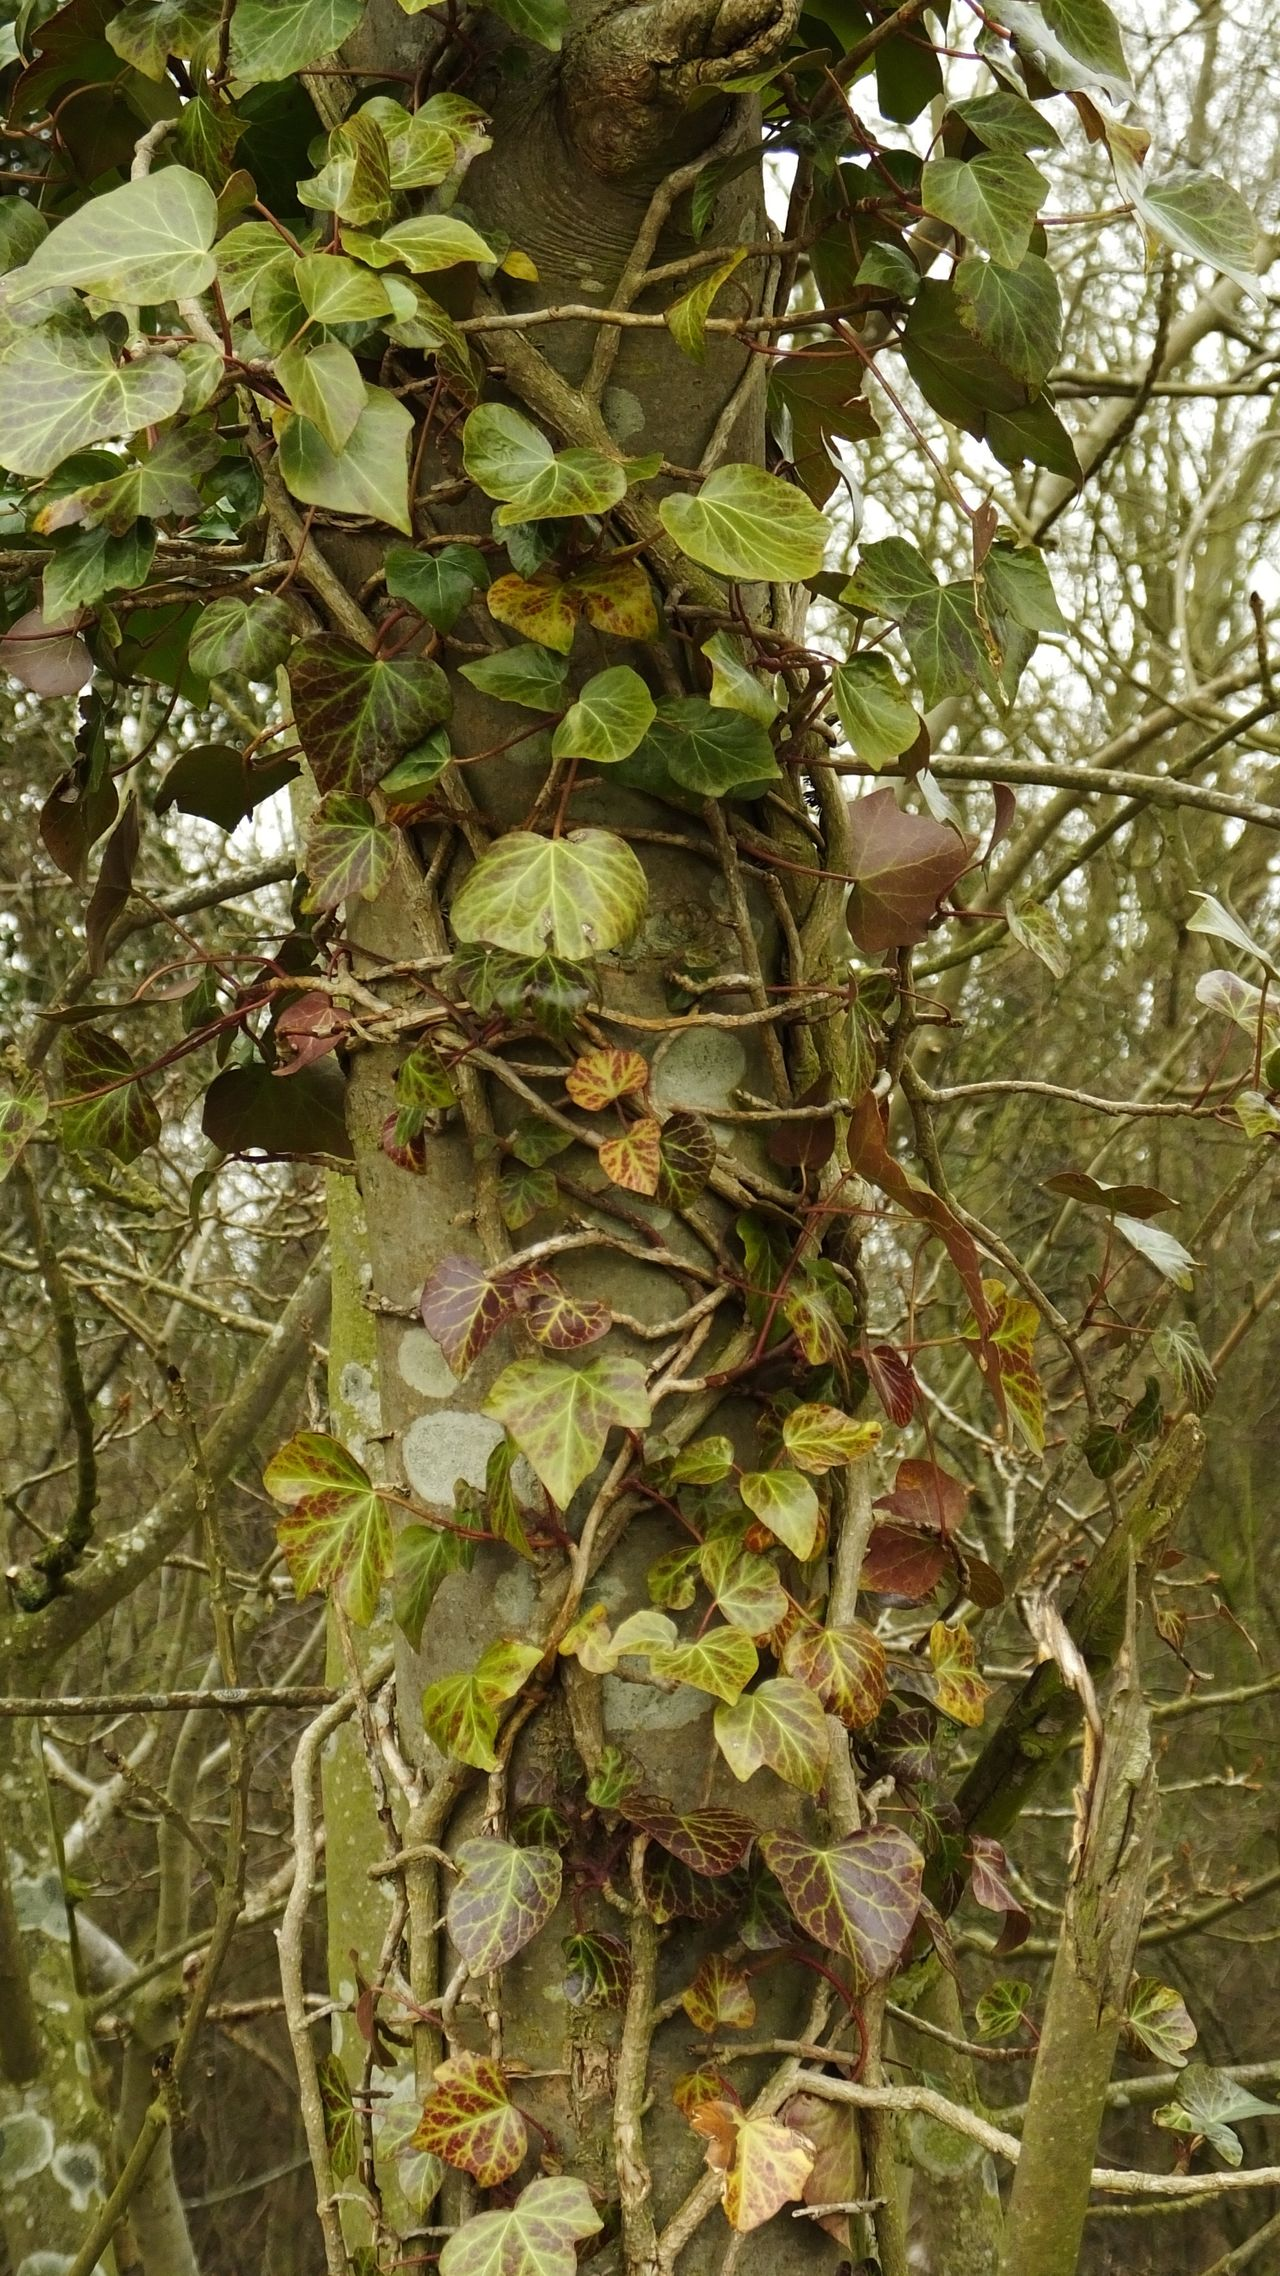 Ivy Ivy Leaves Ivy Covered Colours Changing Seasons Changing Leaves Tree Growing Plants Growing Climbing Plant Climbing Nature Natrual  Wood Woods Competing Competition UniSon Partnership